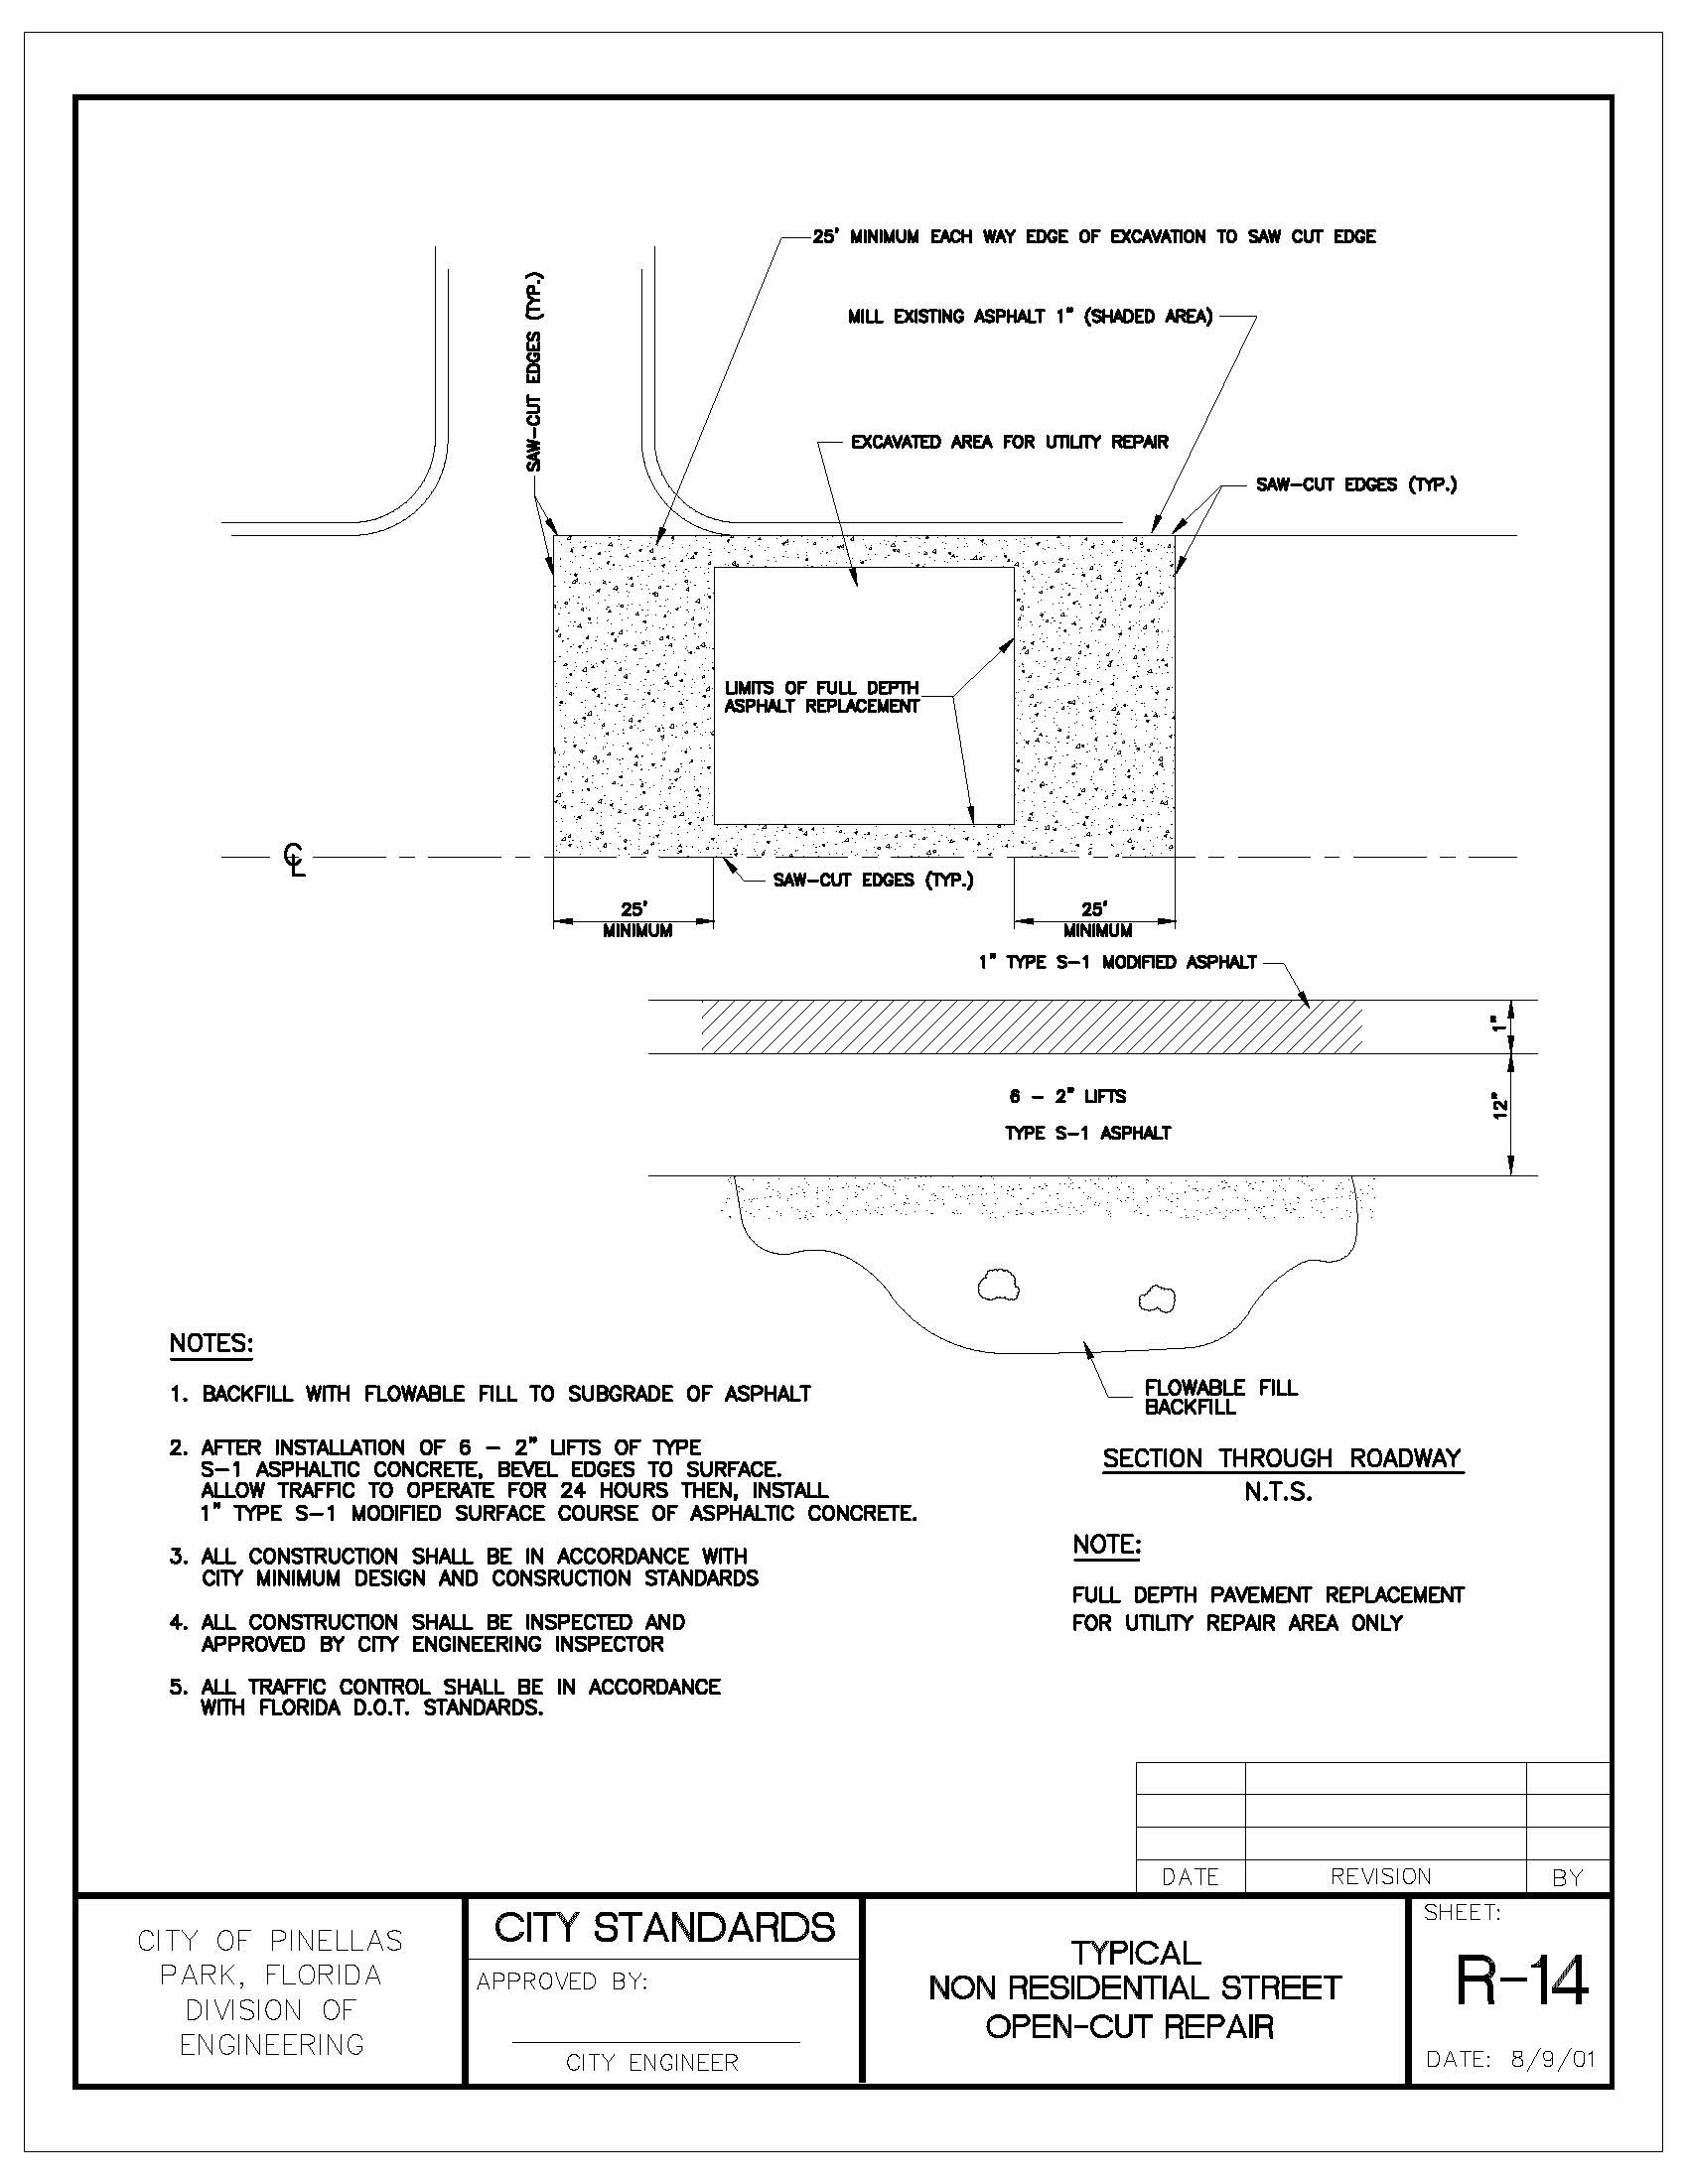 Engineering Manual v5_201908121127291138_Page_051 typical non residential street open cut repair